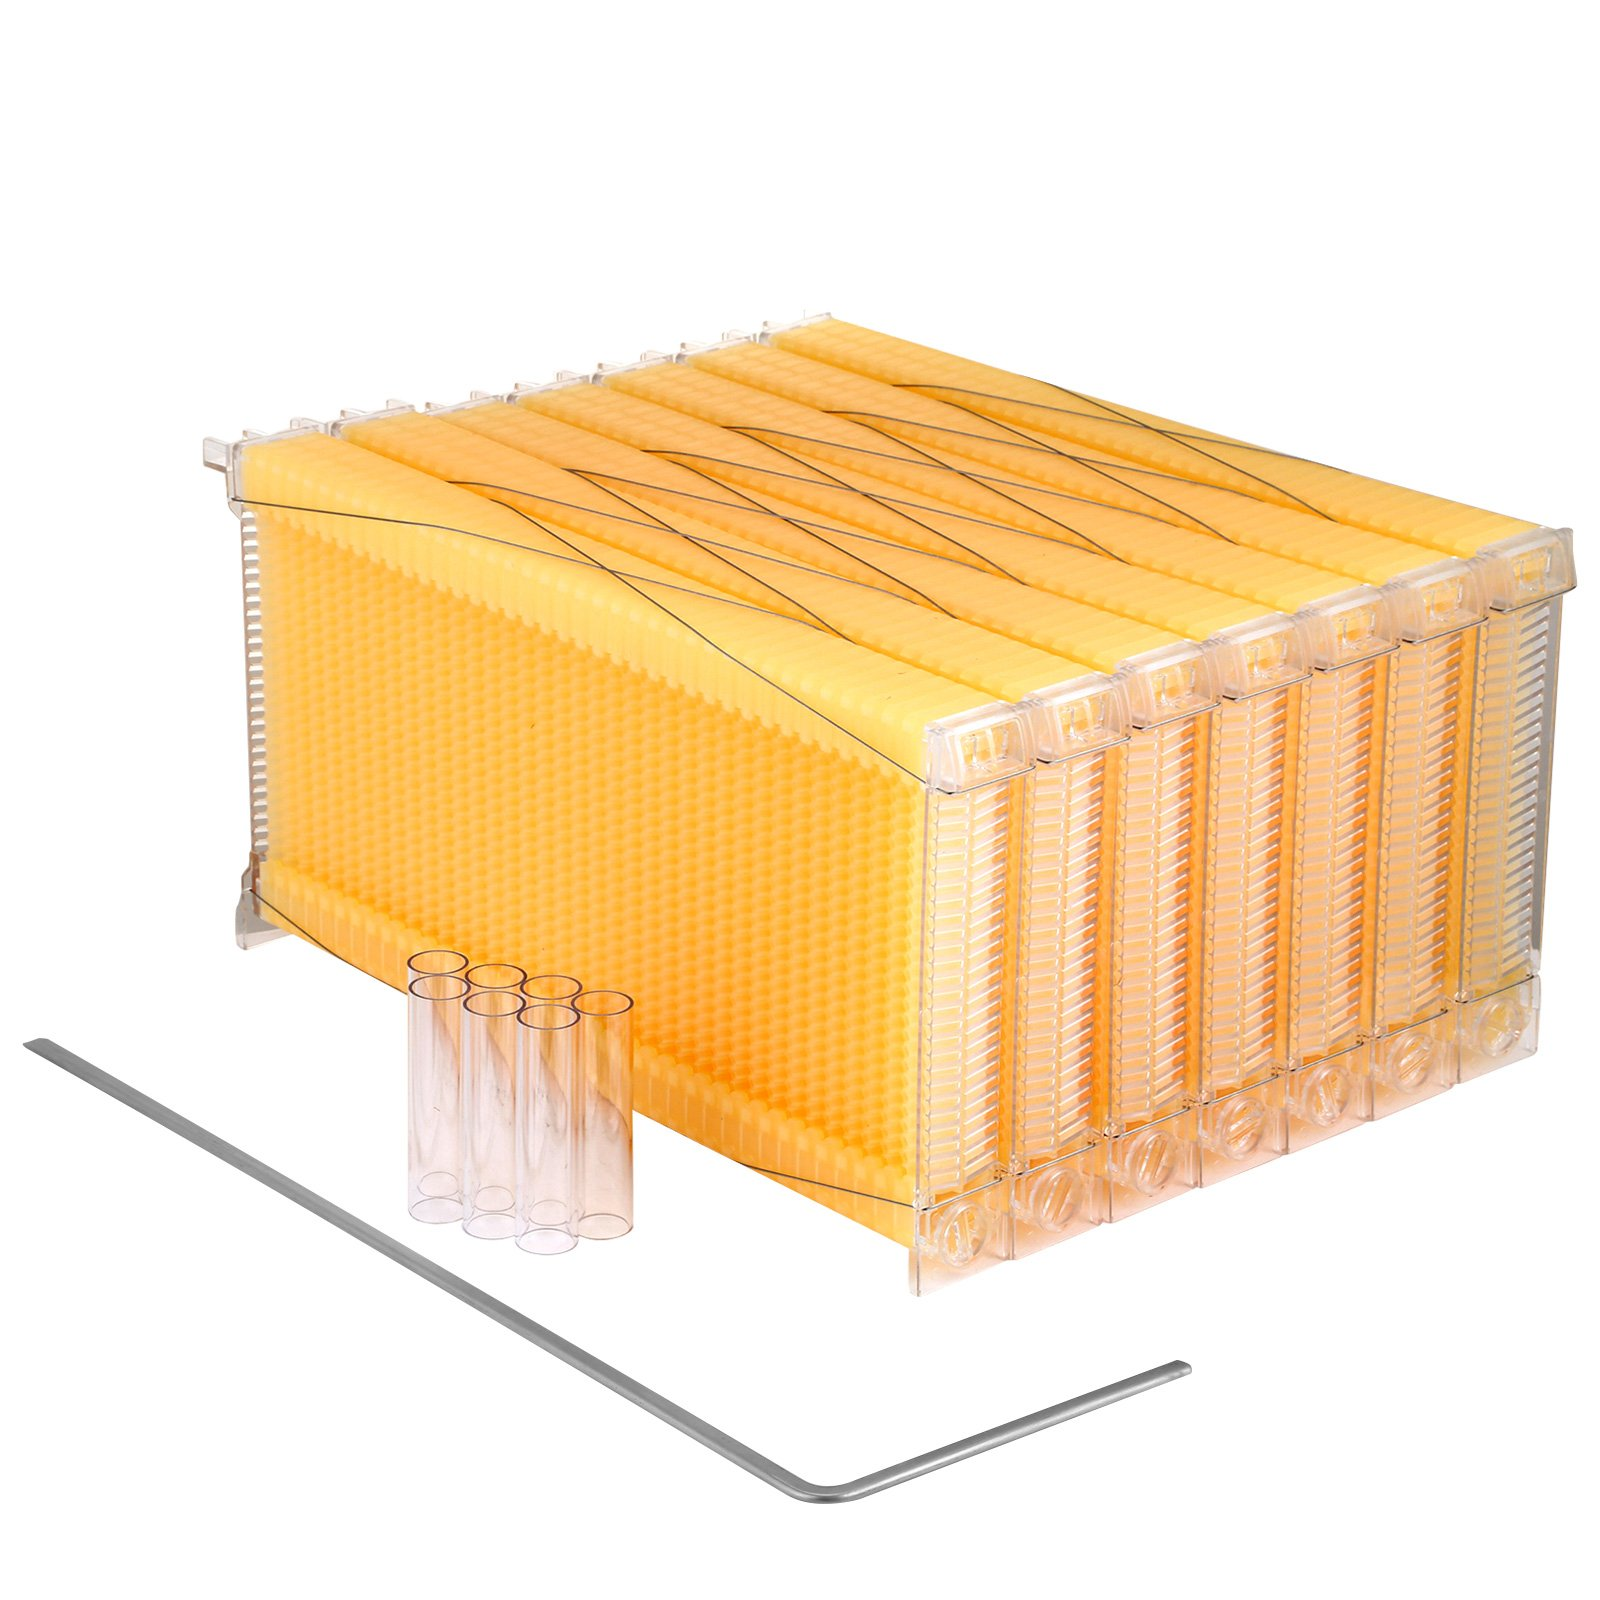 VEVOR 7Pcs Auto Flow Bee Comb Beehive Frames Auto Flow Honey Plastic Flow Honey Beekeeping Beehive with 7 Harvest Tubes and a Harvest Key(Auto Flow without Frame House)